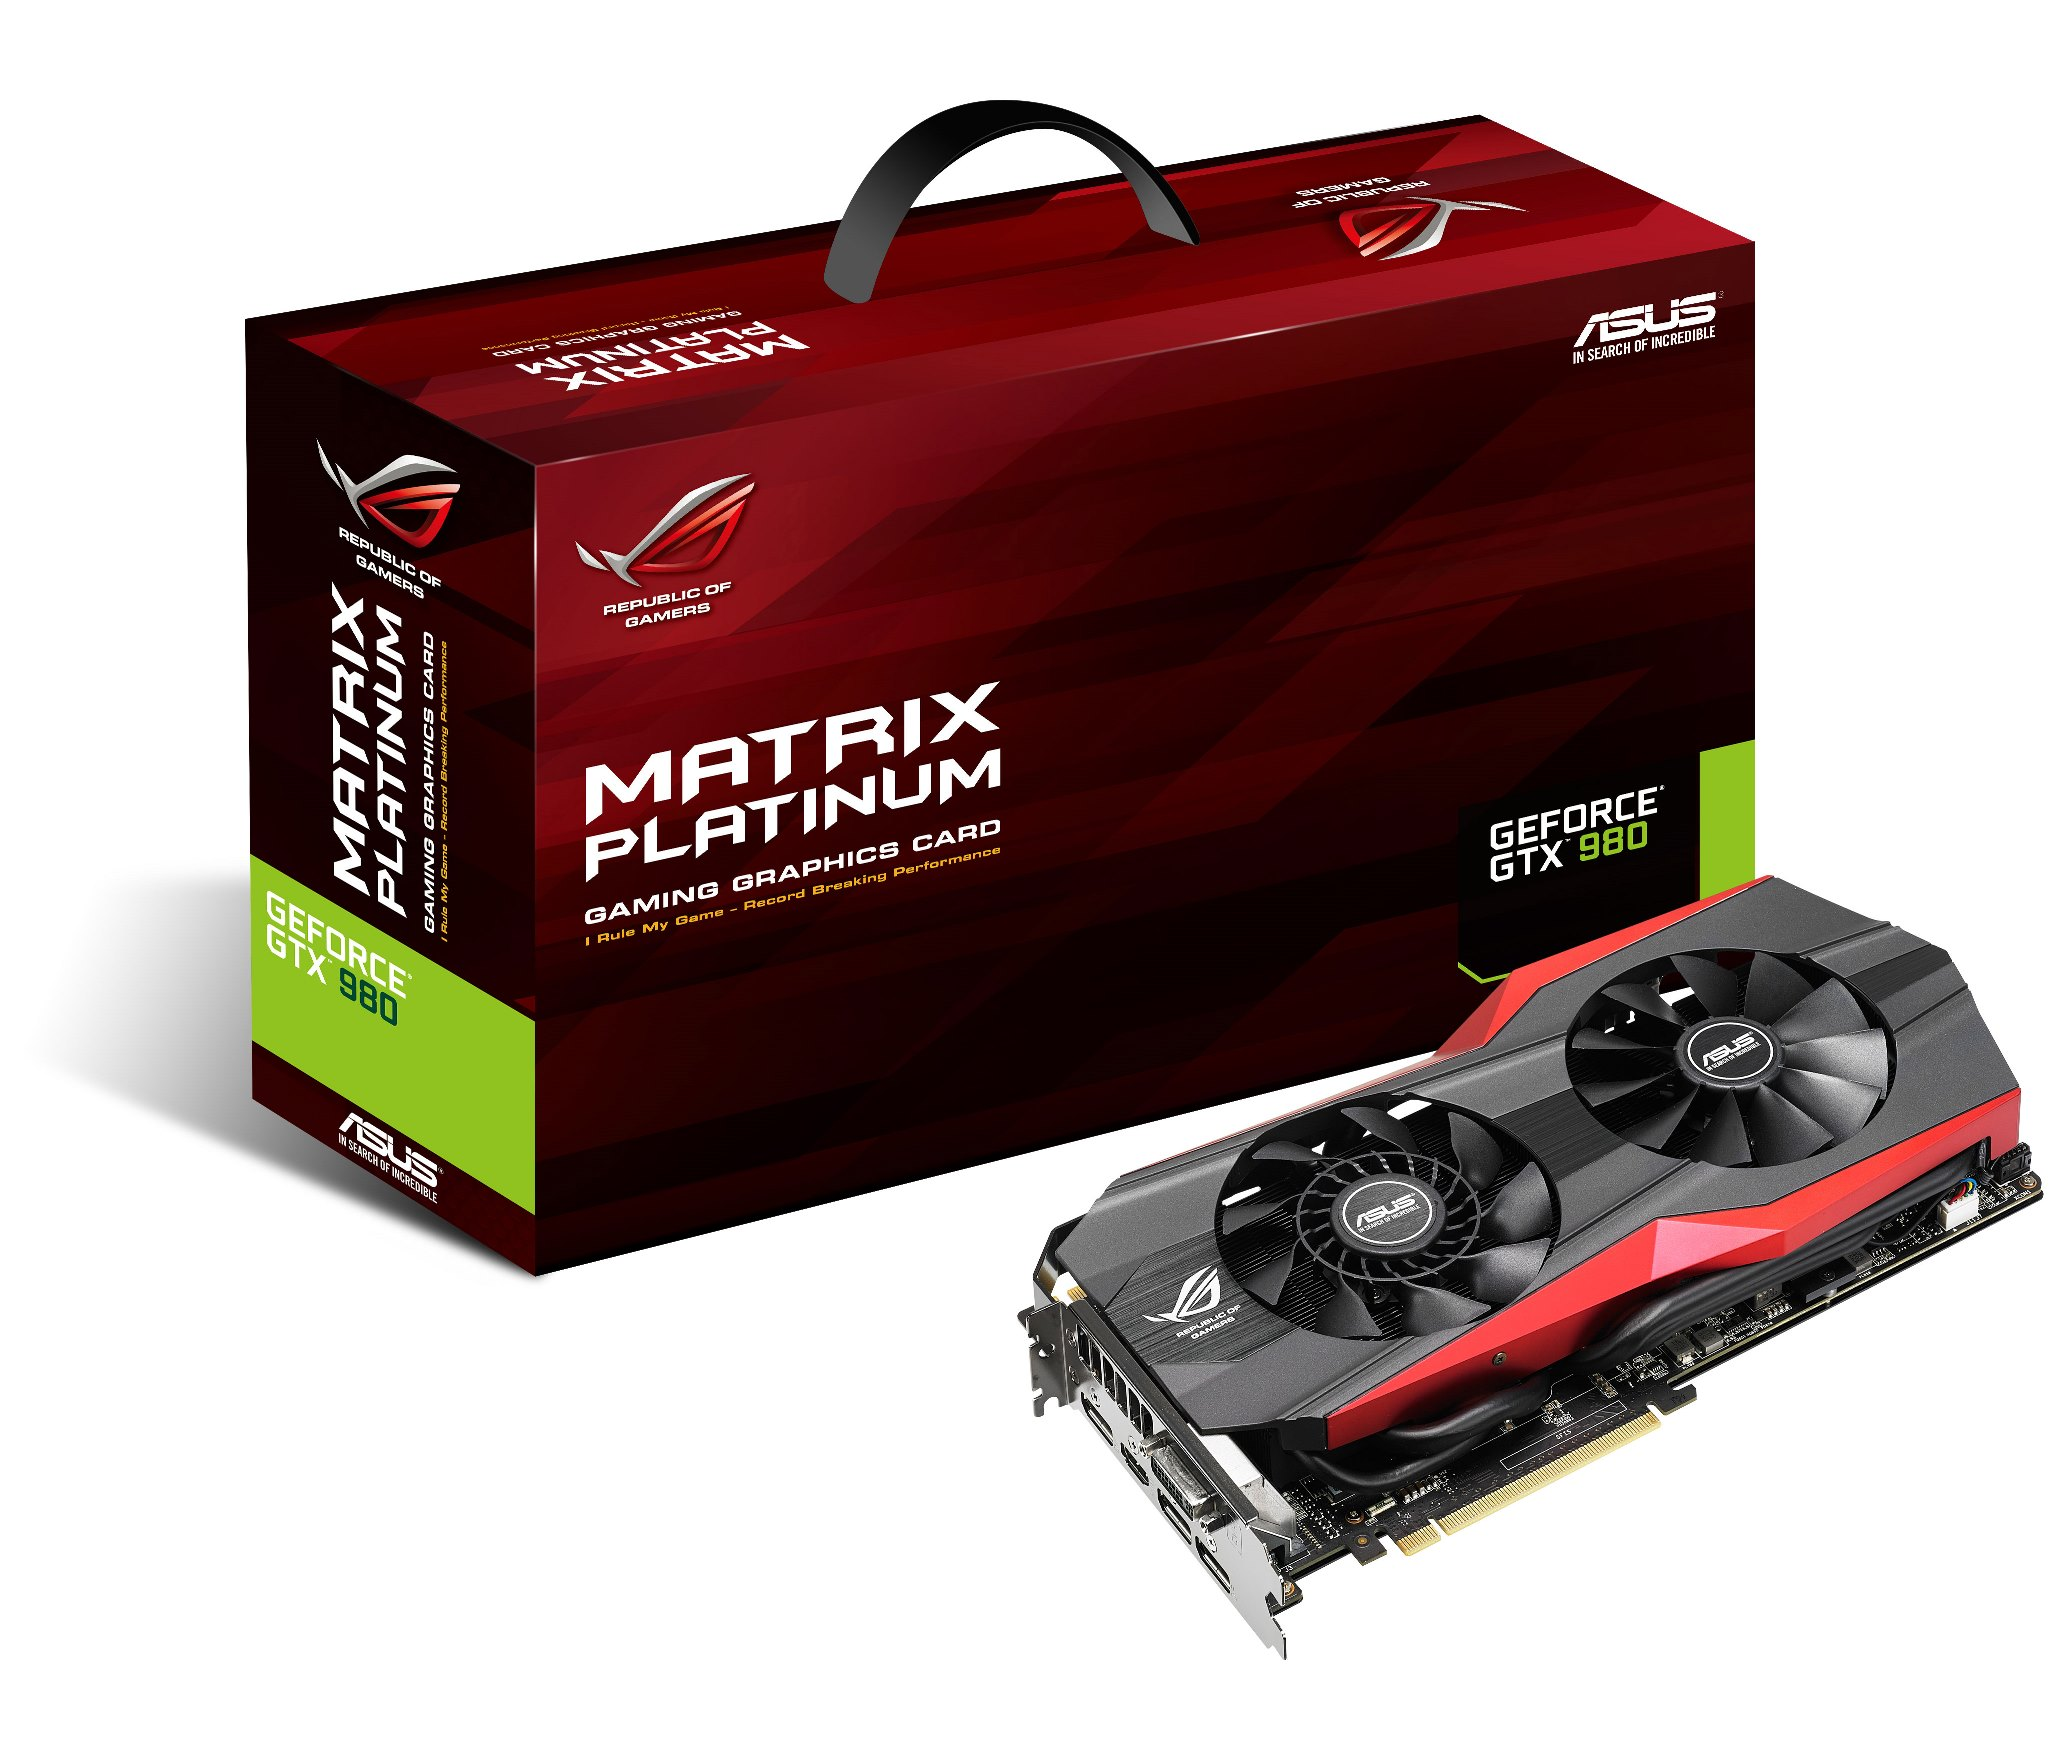 ASUS ROG MATRIX-GTX980-P-4GD5 01